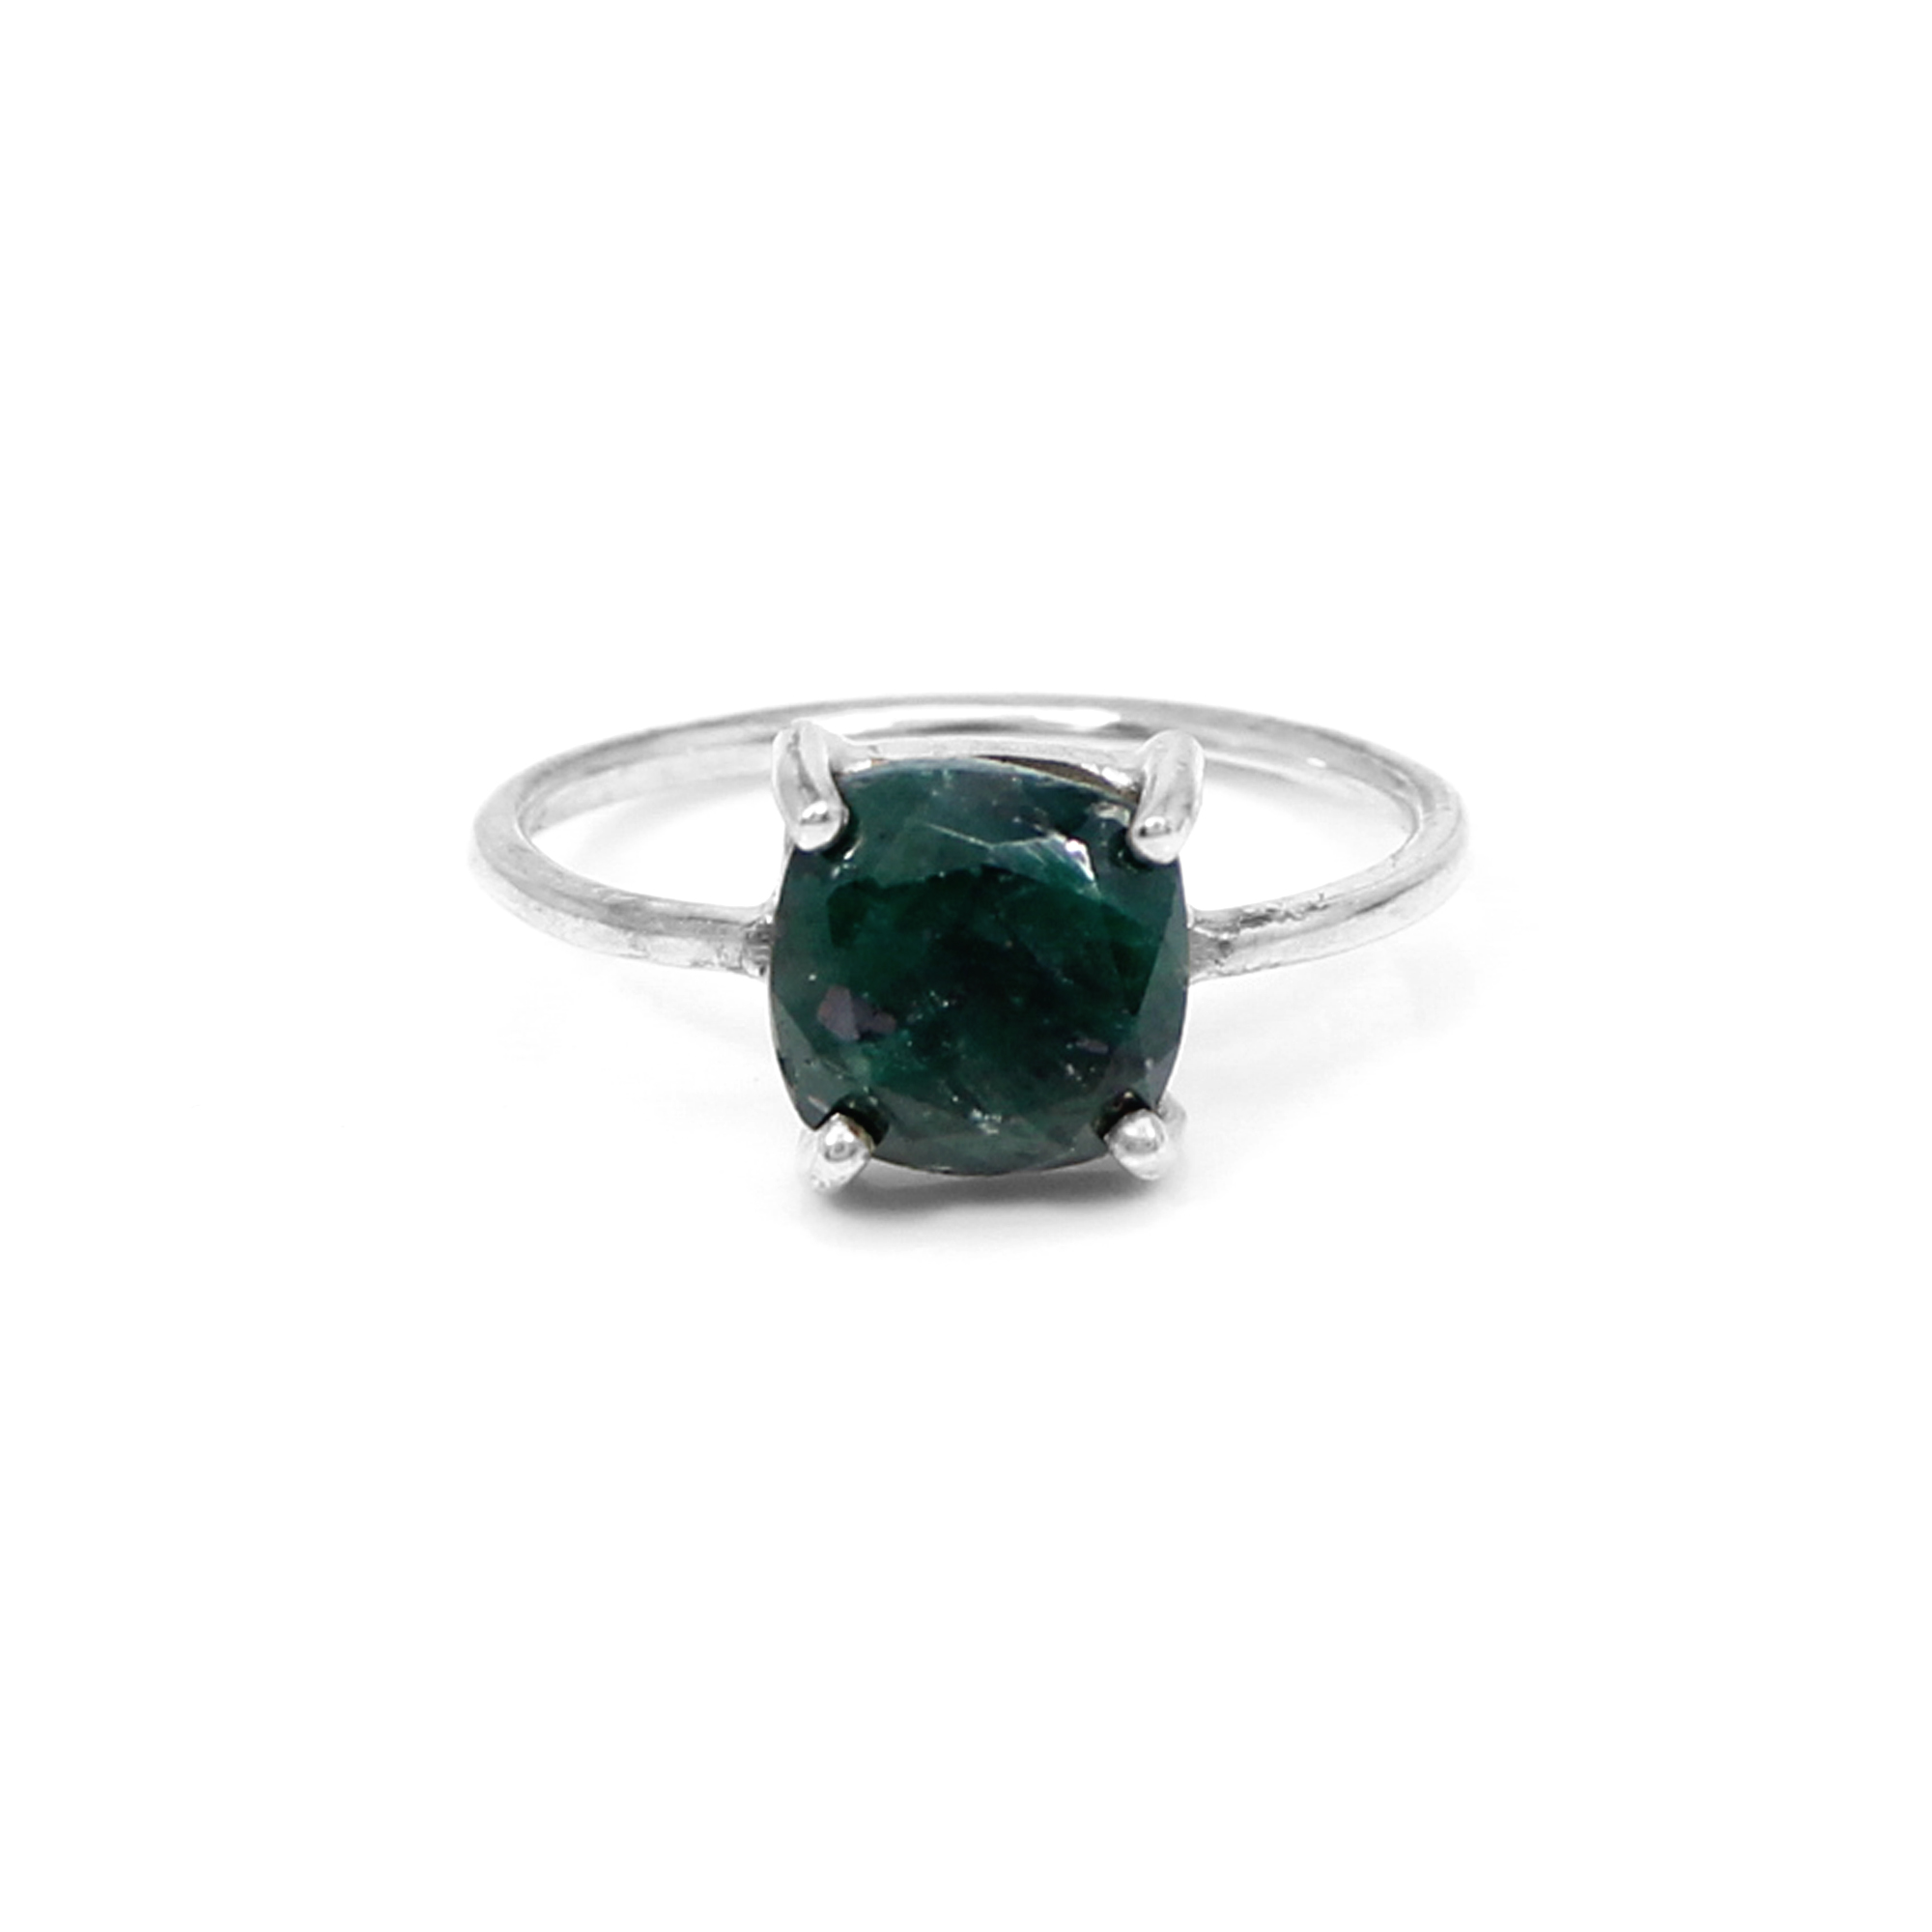 Hot Sale Emerald Corundum Gemstone Ring Solid 925 Sterling Silver Ring Prong Setting Rings Women Dainty Rings Art Deco Rings